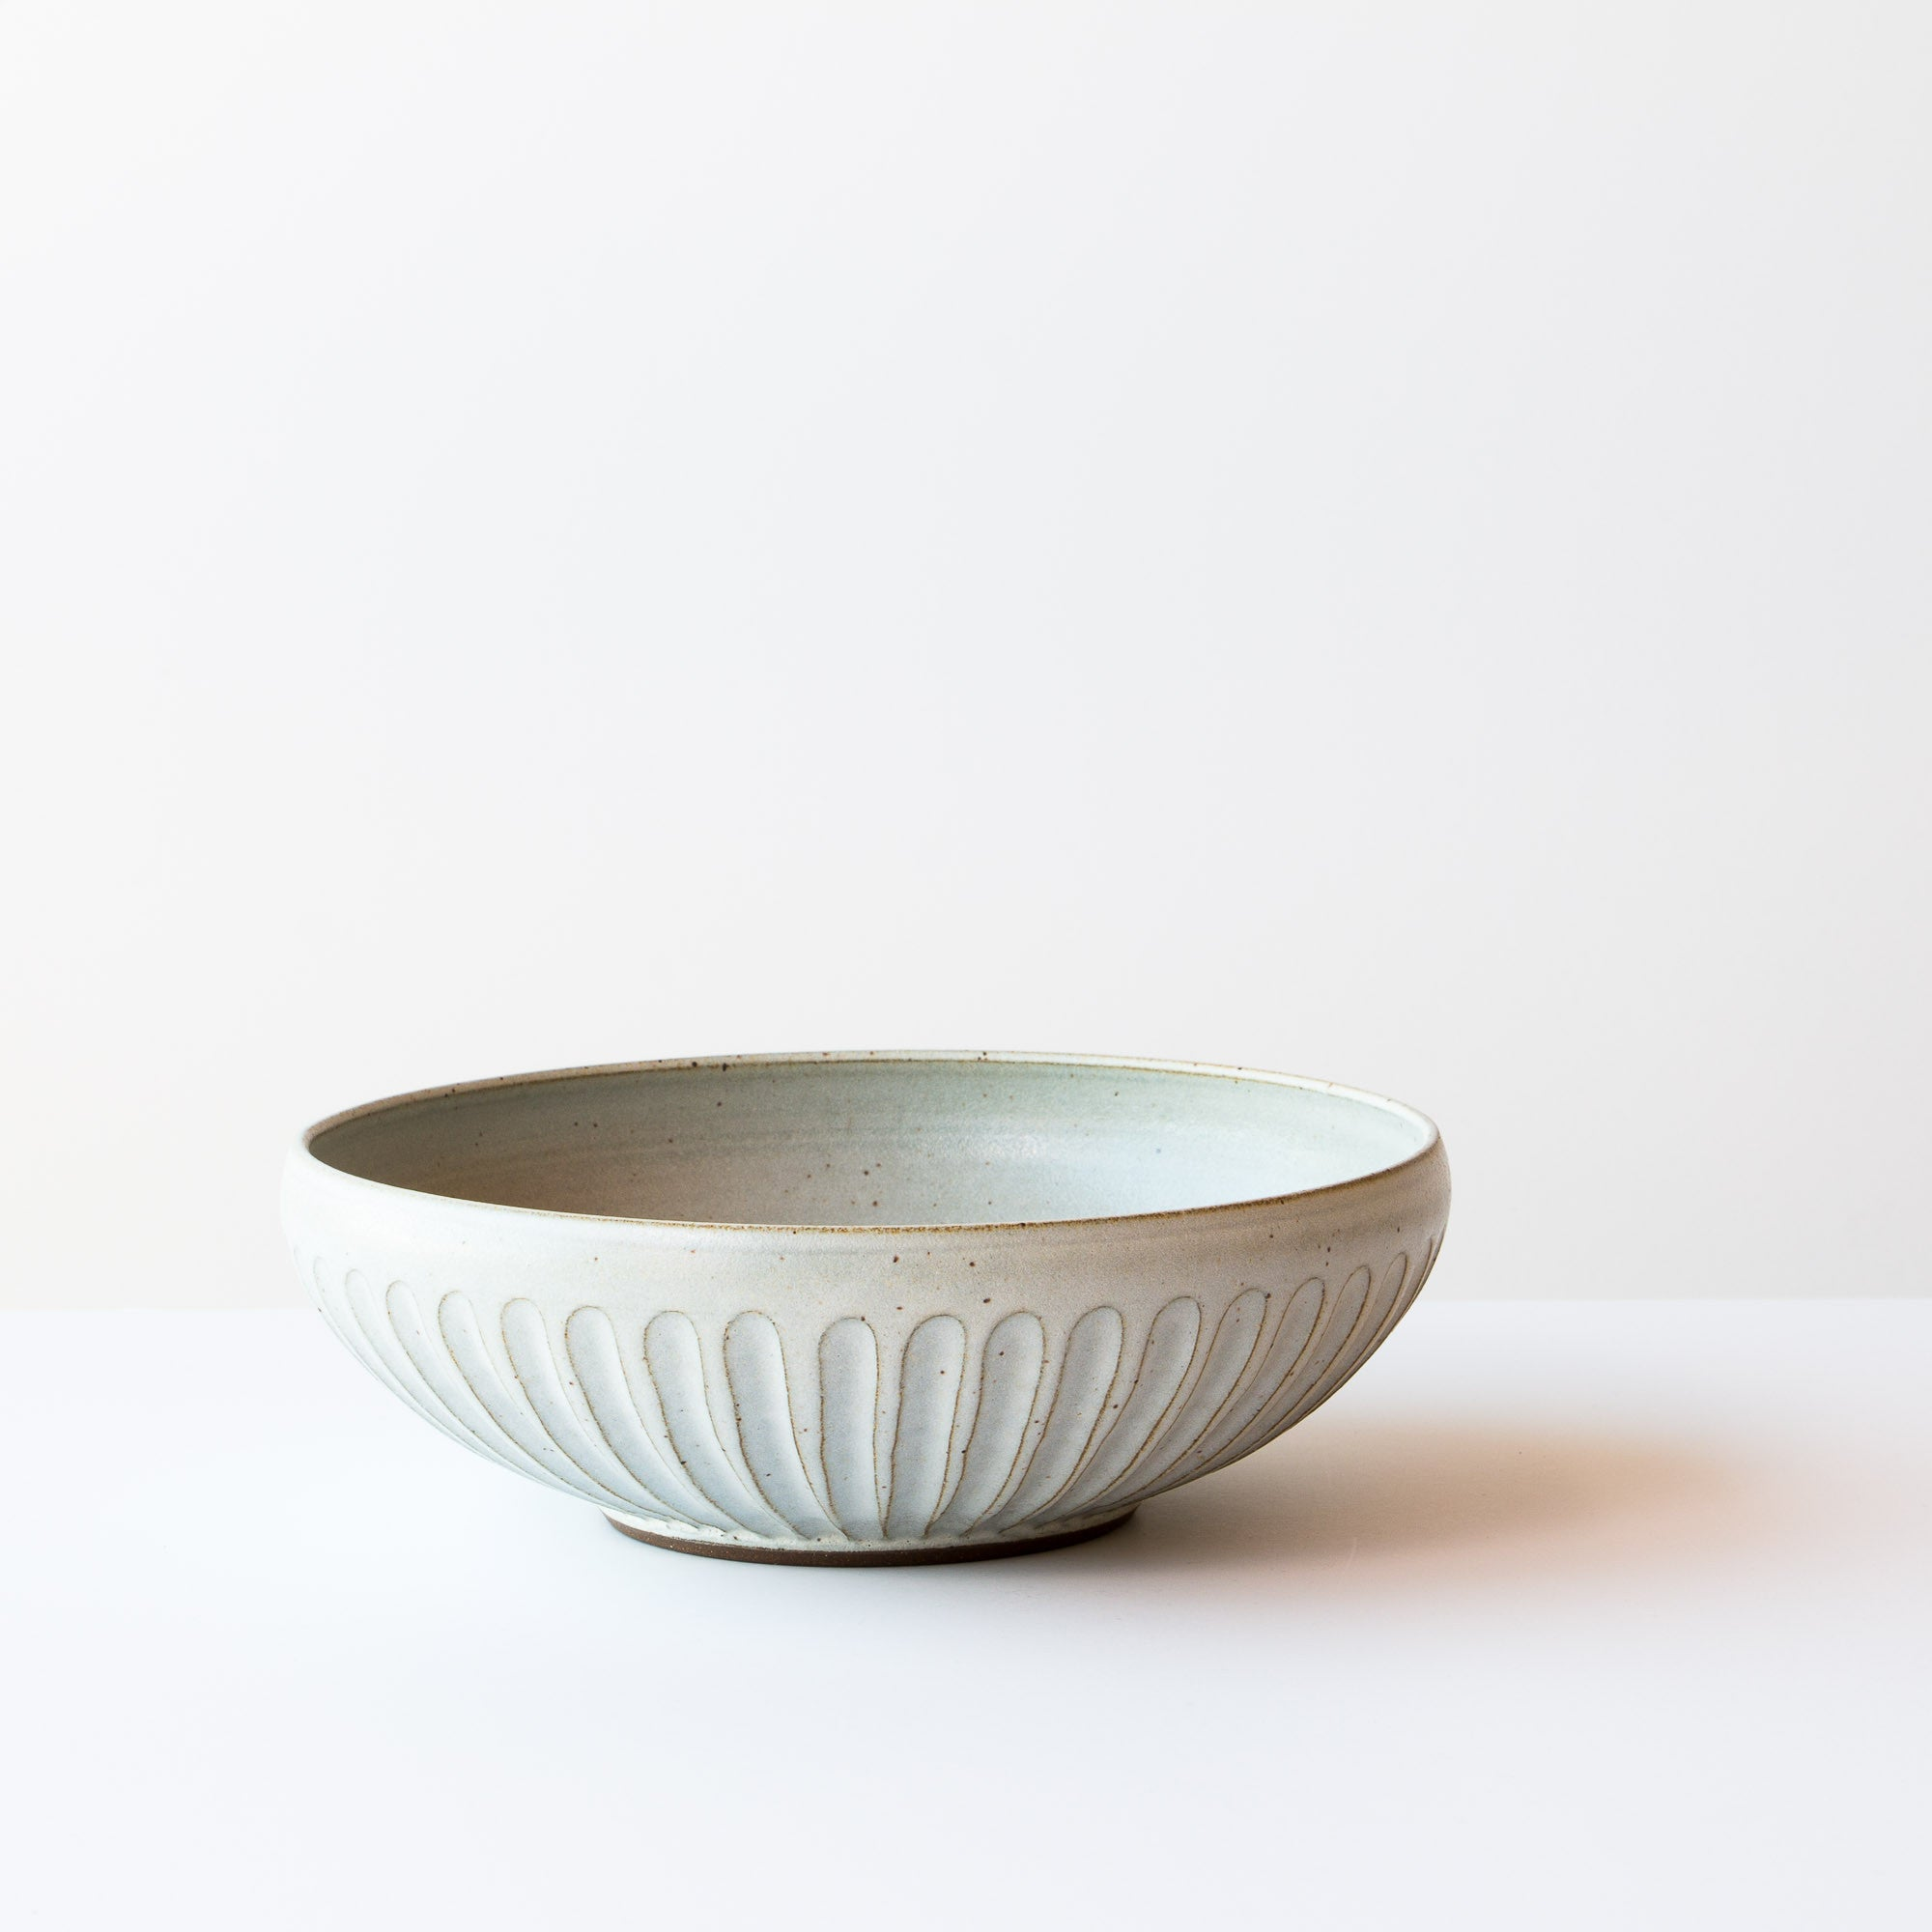 Handmade Contemporary Ceramic Bowl - Hand Thrown in Canada - Chic & Basta